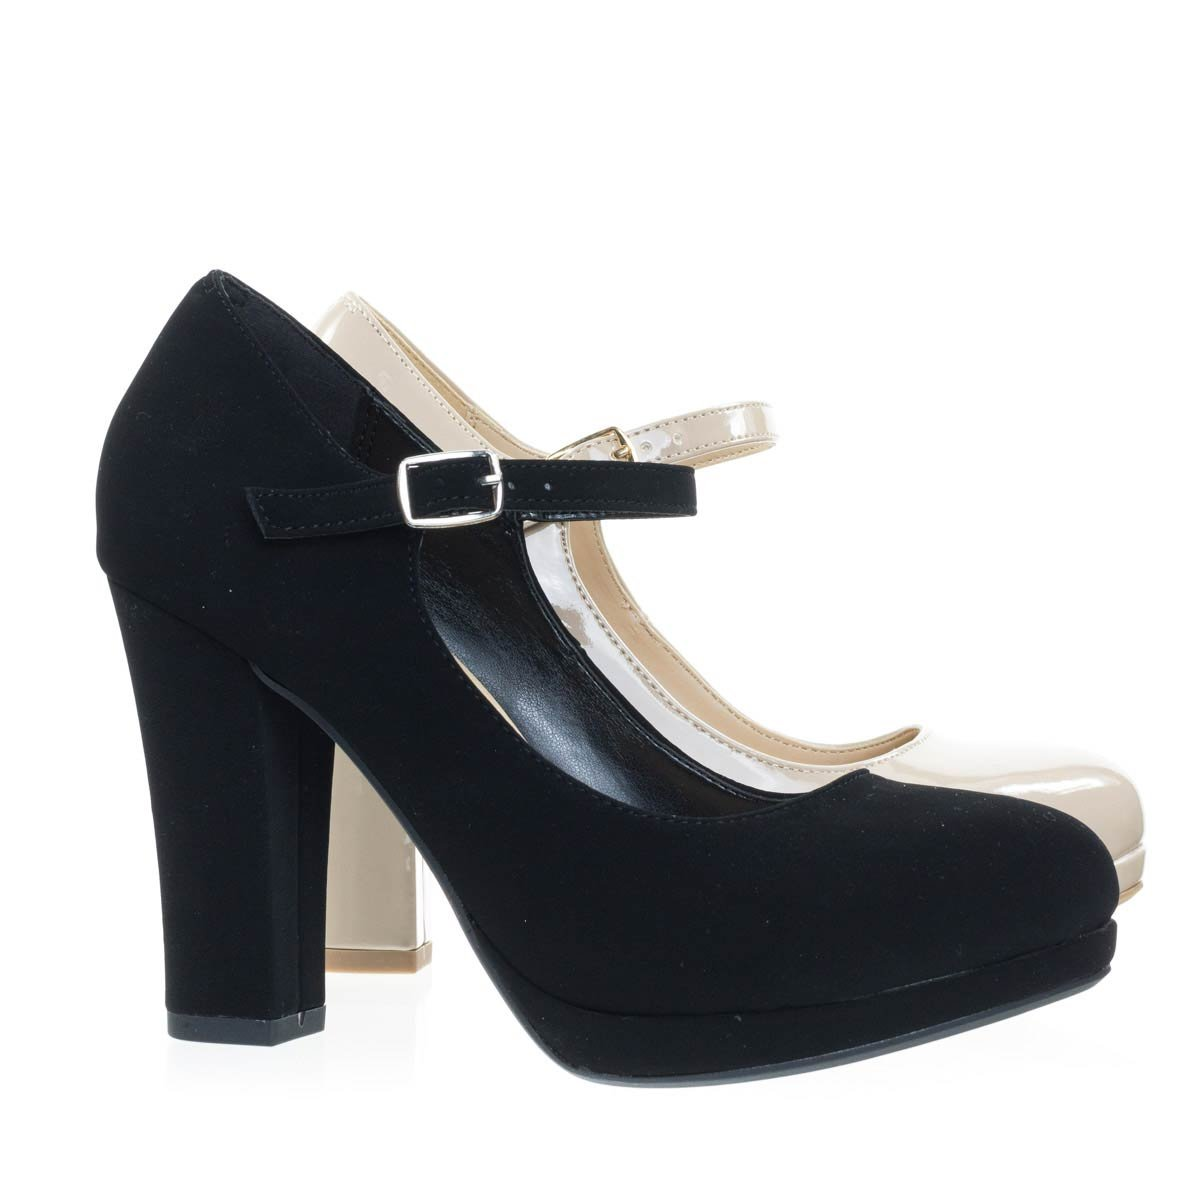 City Classified Ayden Black Nubuck Foam Padded Comfortable Mary-Jane Dress Pump, Chunky Block High Heel -8